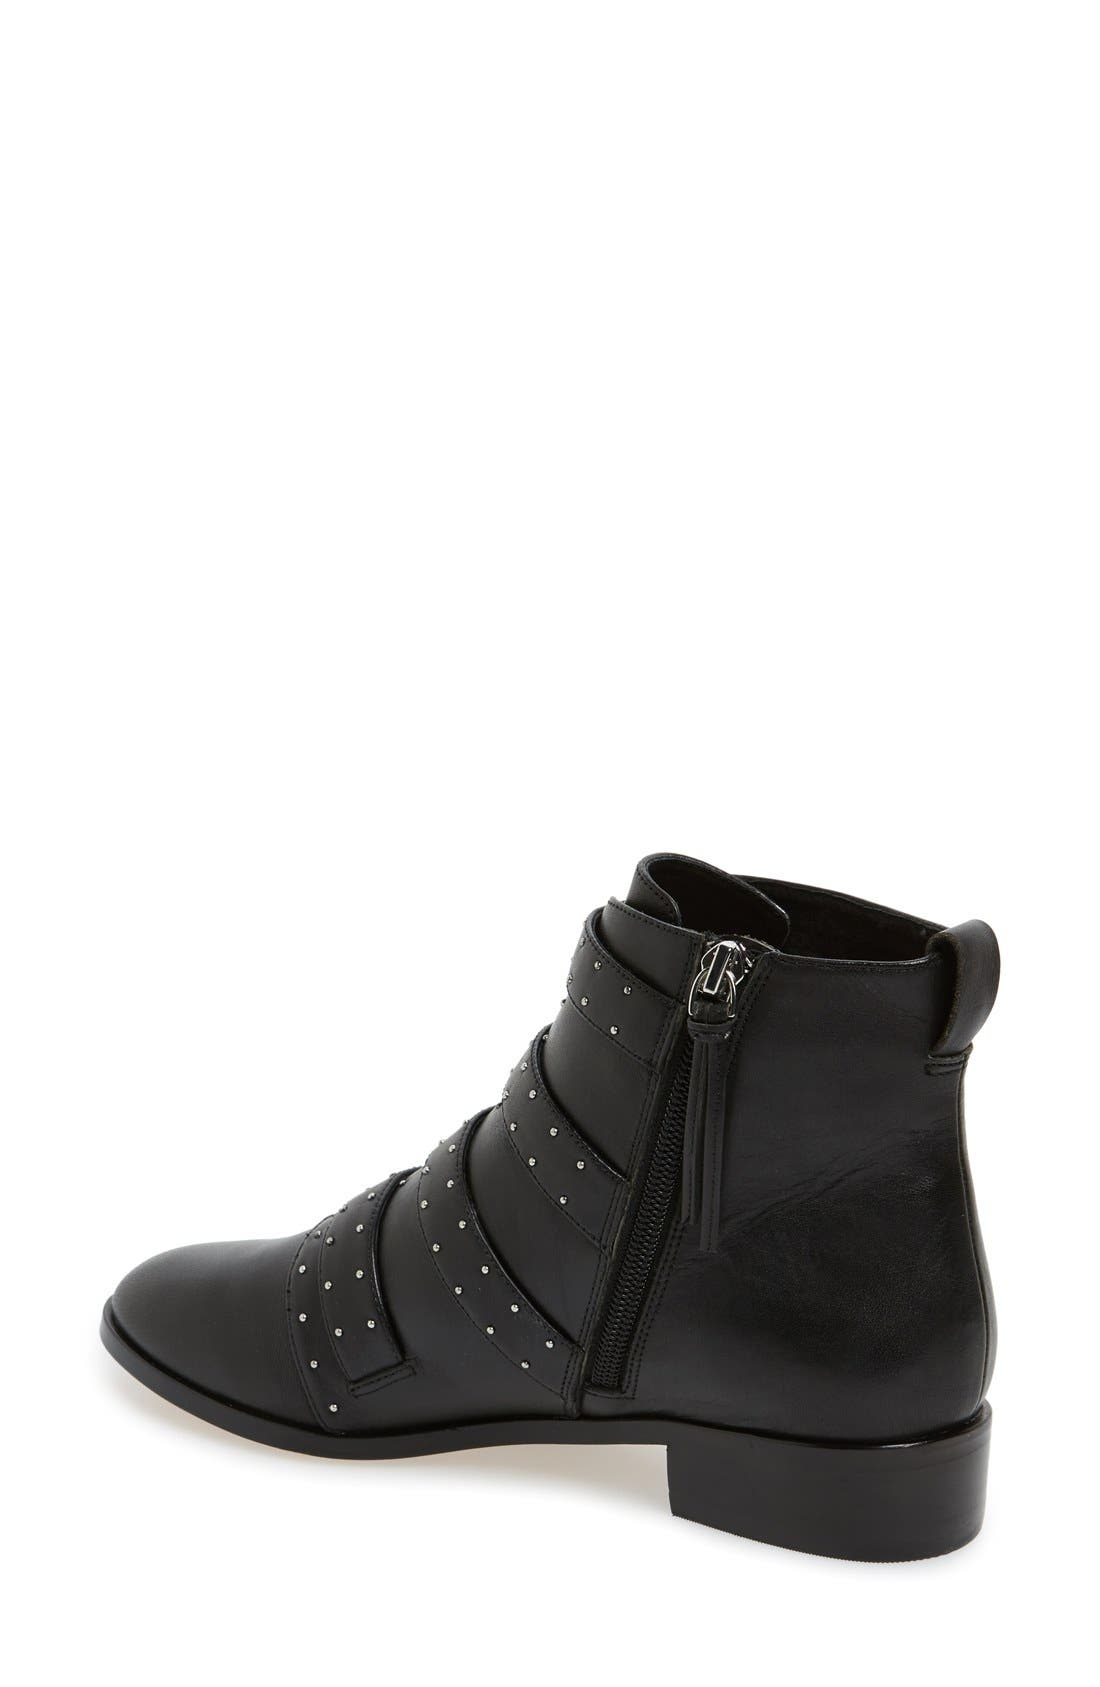 Alternate Image 2  - Rebecca Minkoff 'Maddox' Buckle Bootie (Women)